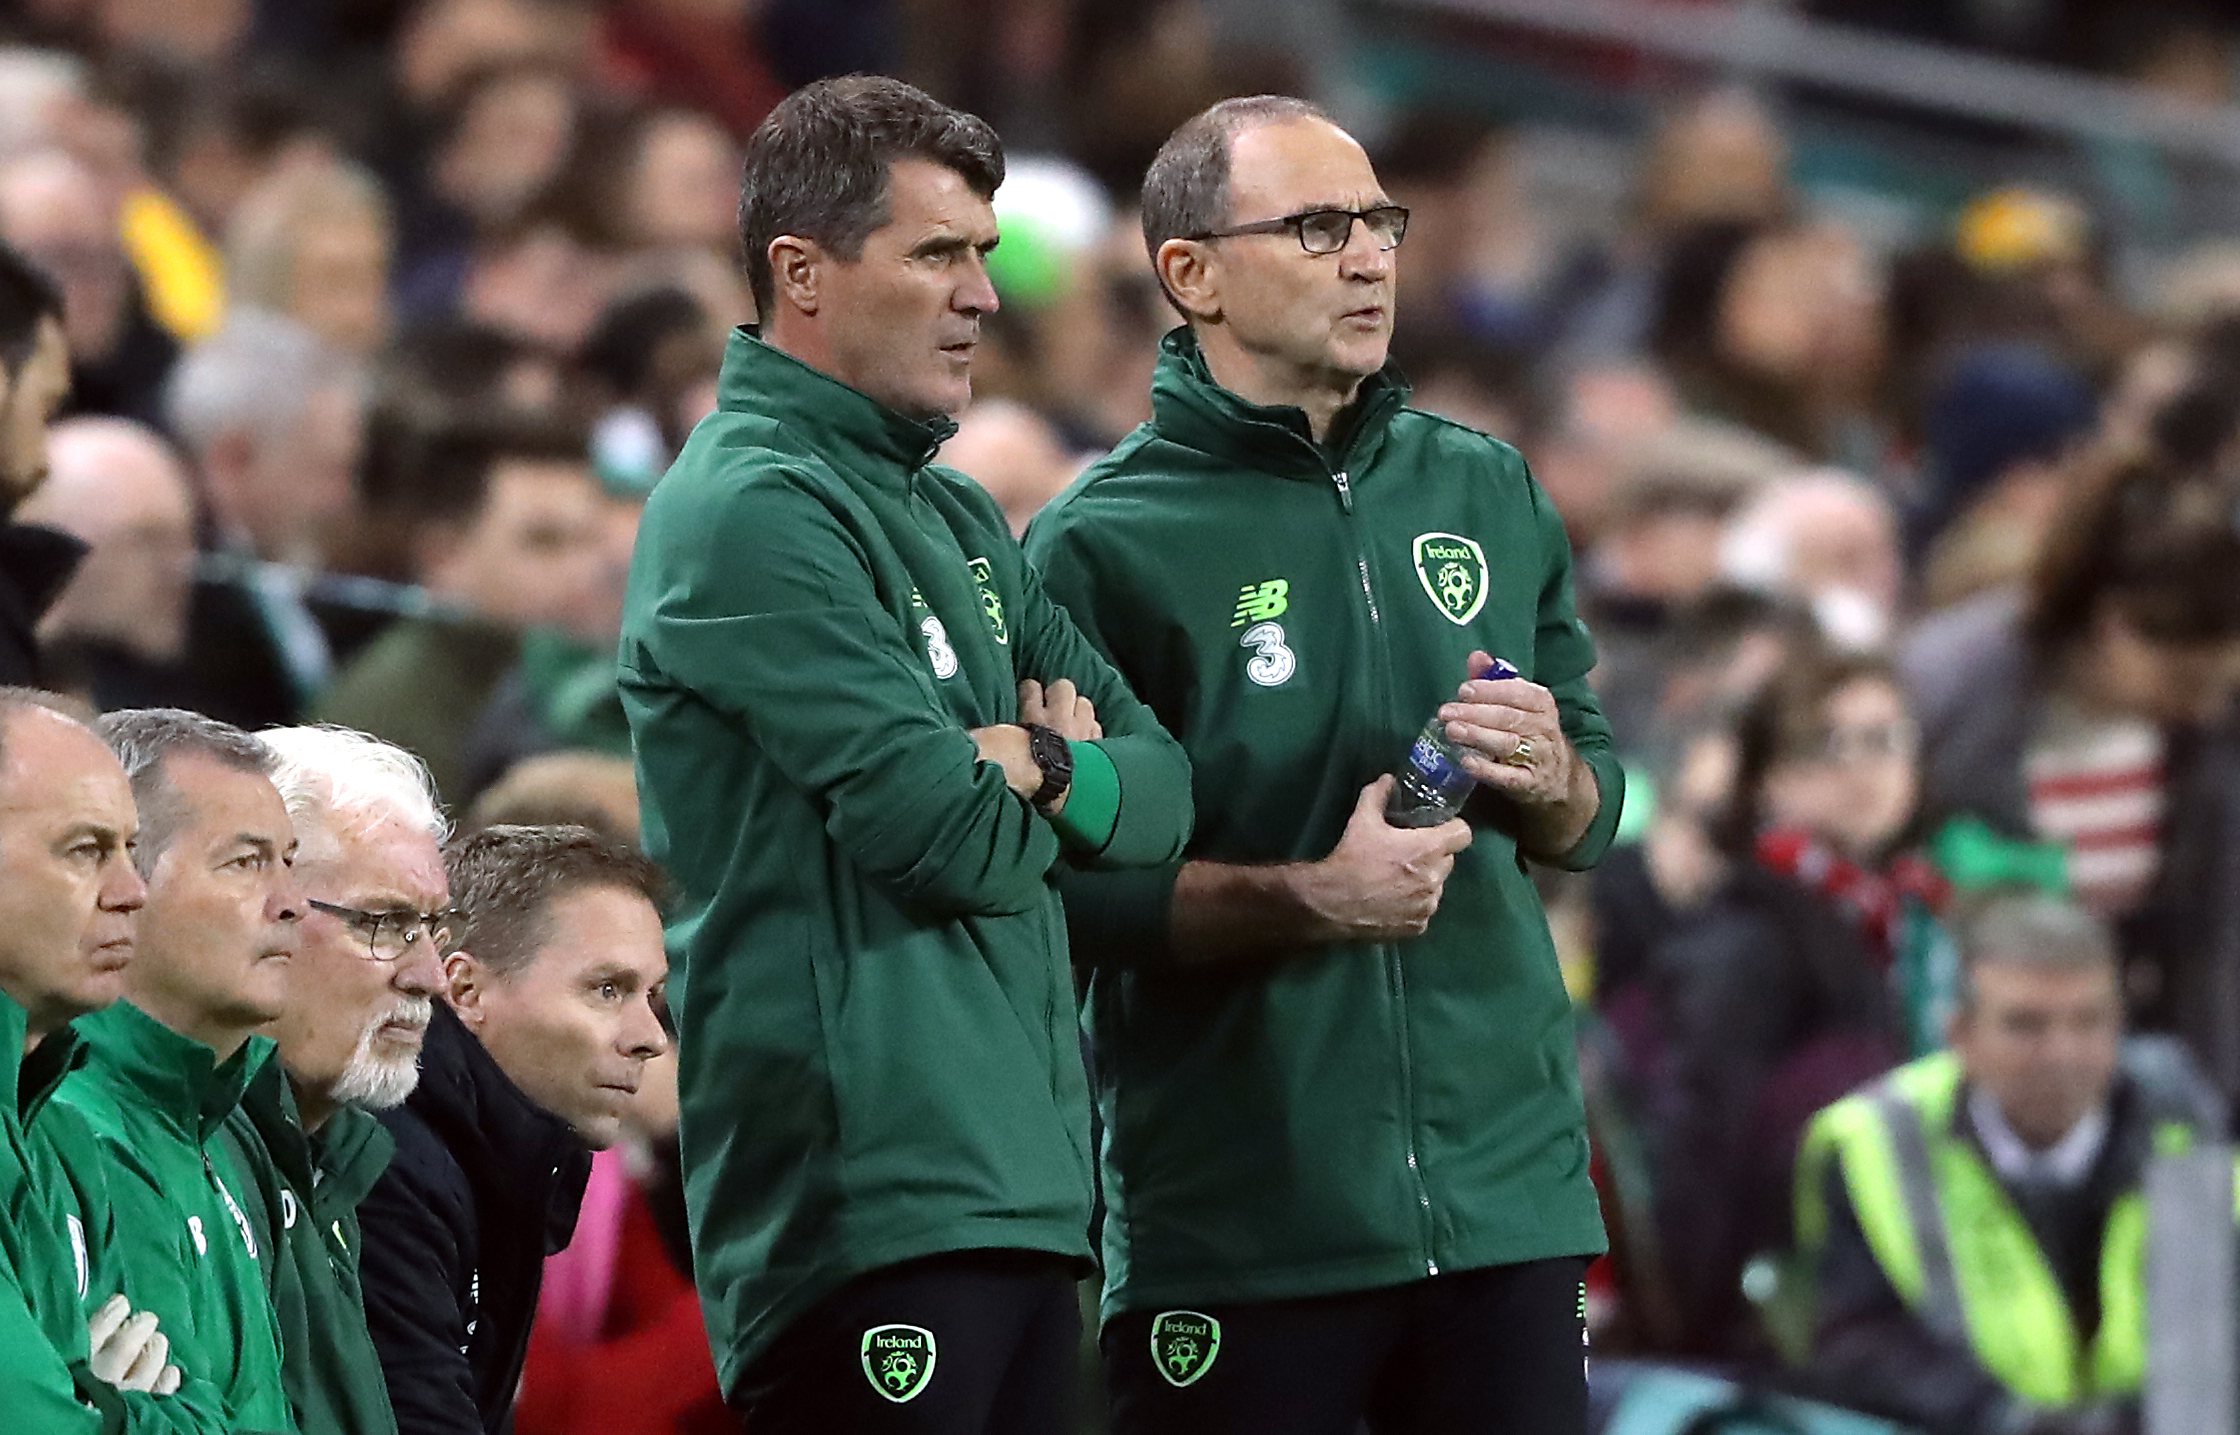 Martin O'Neill steps down as Ireland manager, Roy Keane also goes